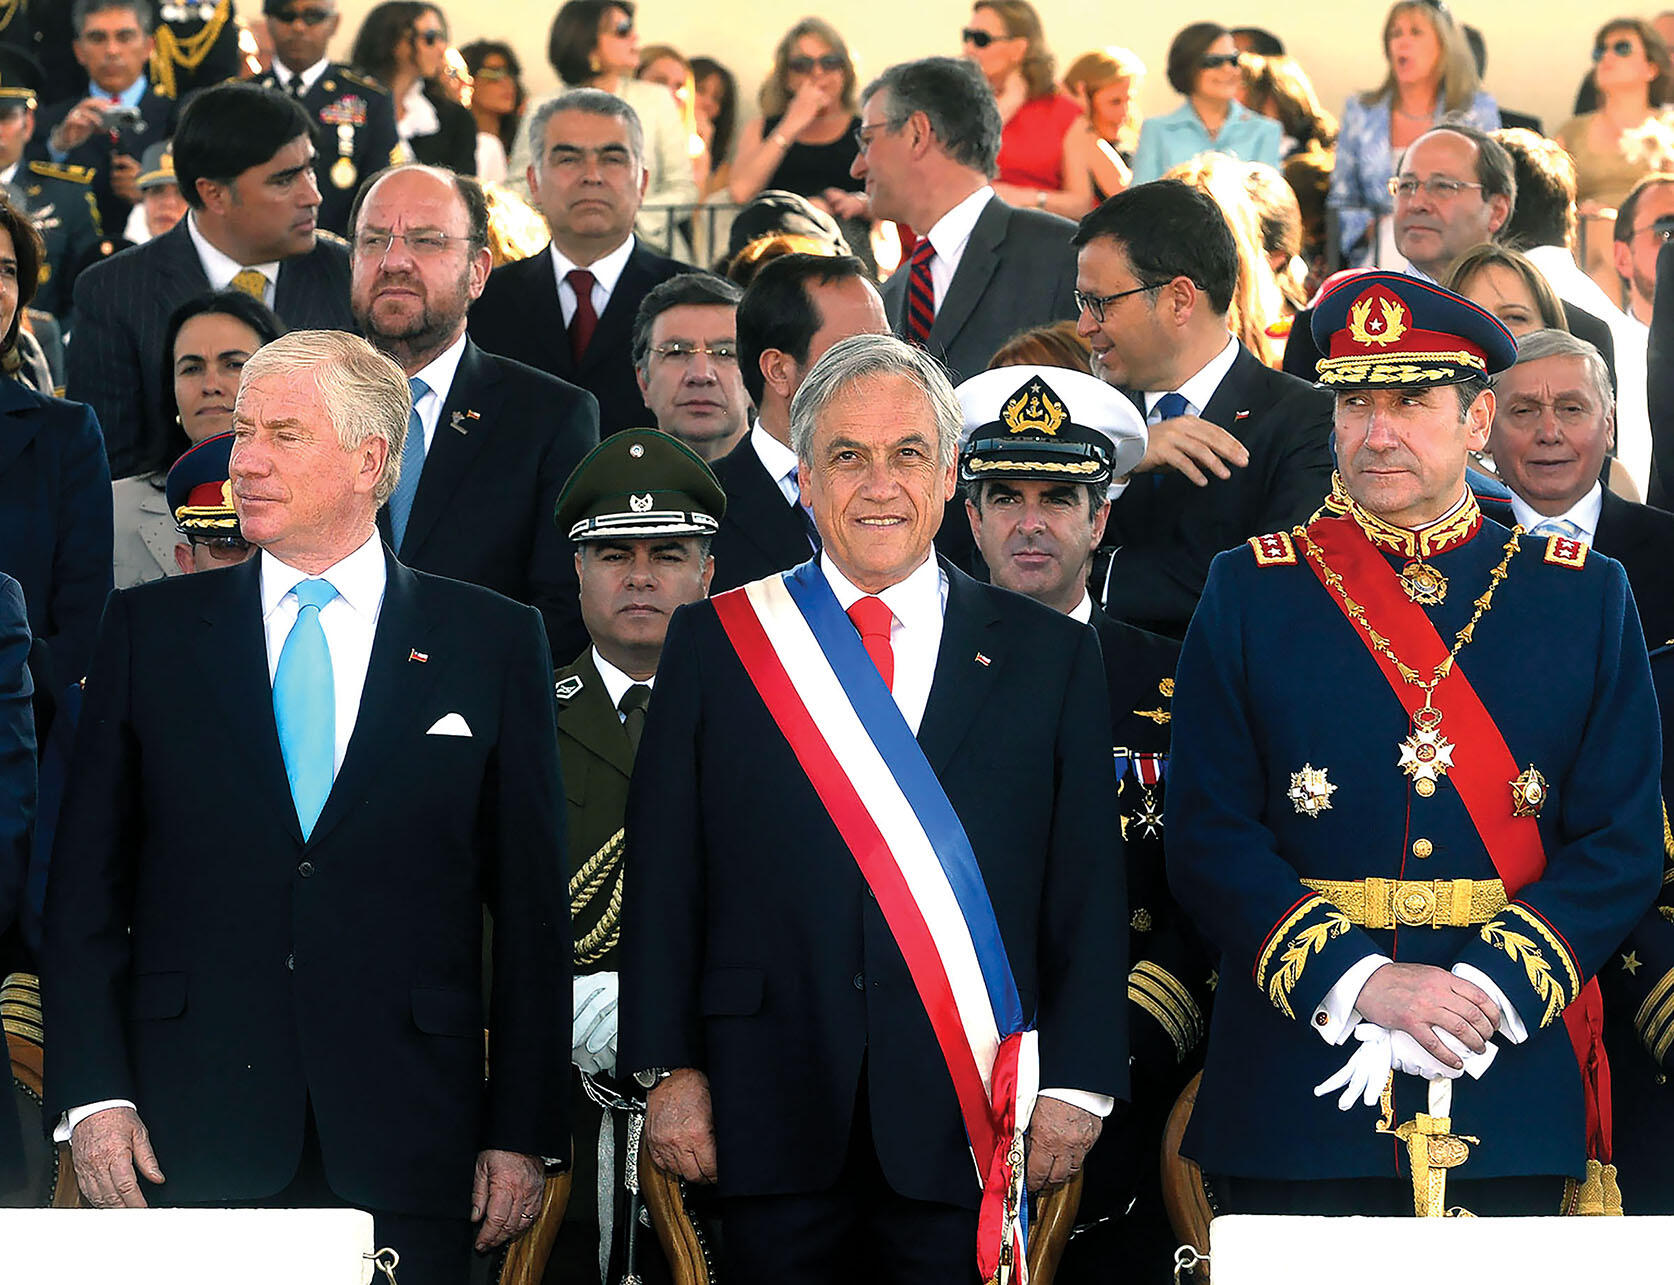 President Sebastián Piñera surrounded by military officers at a parade in 2010. (Photo courtesy of Gobierno de Chile.)